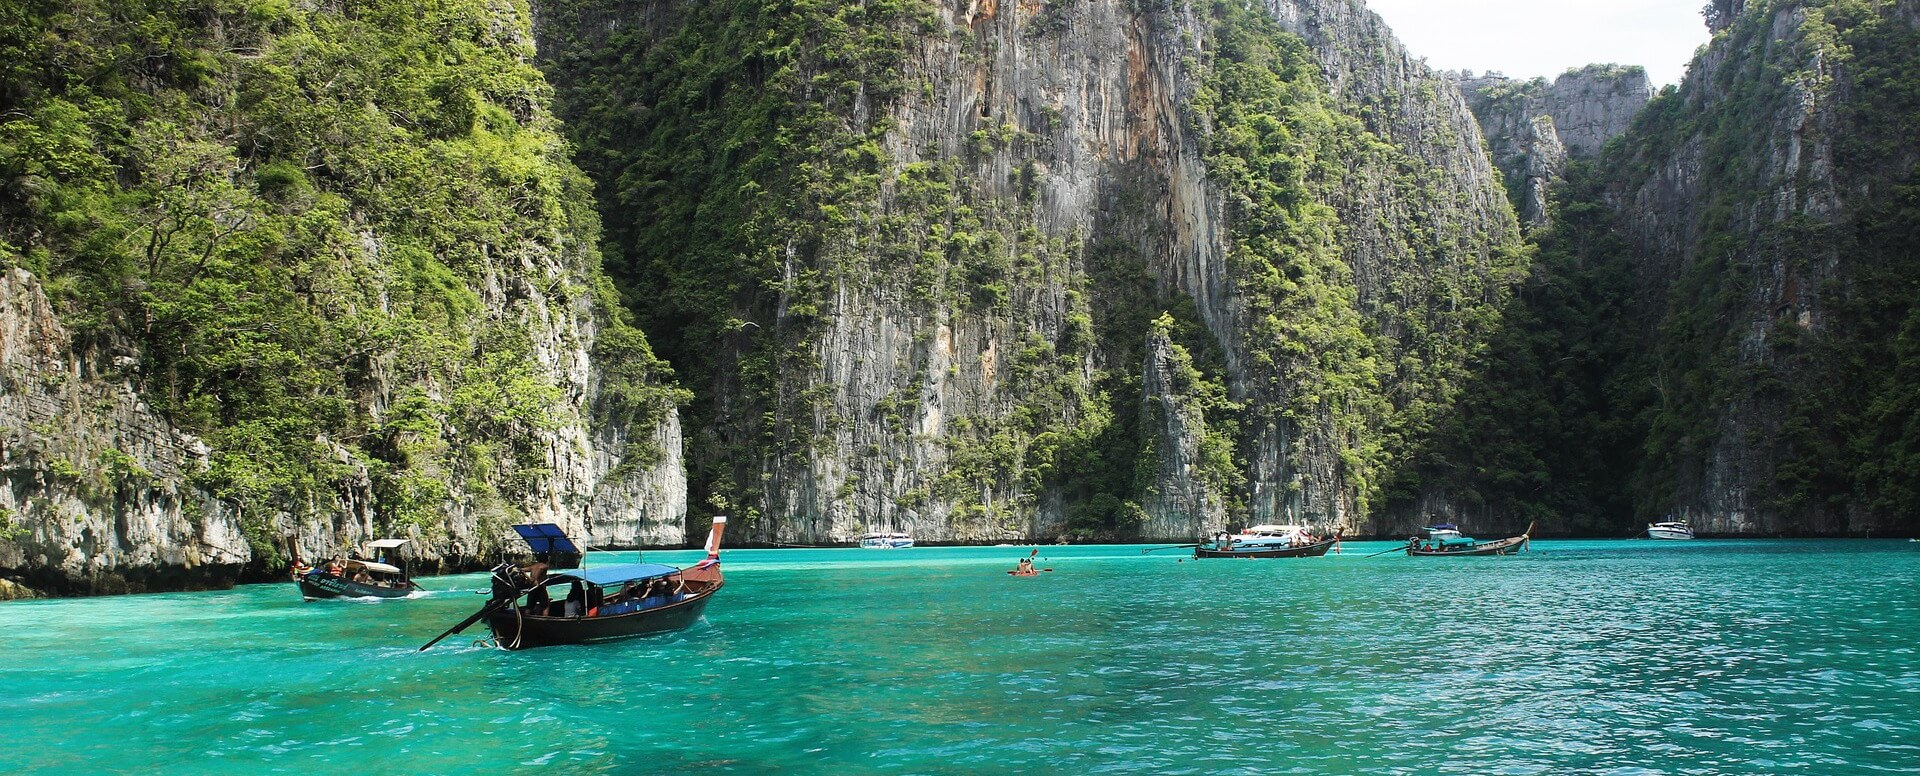 What kind of things to do in Thailand? Activity Guide - Thailand